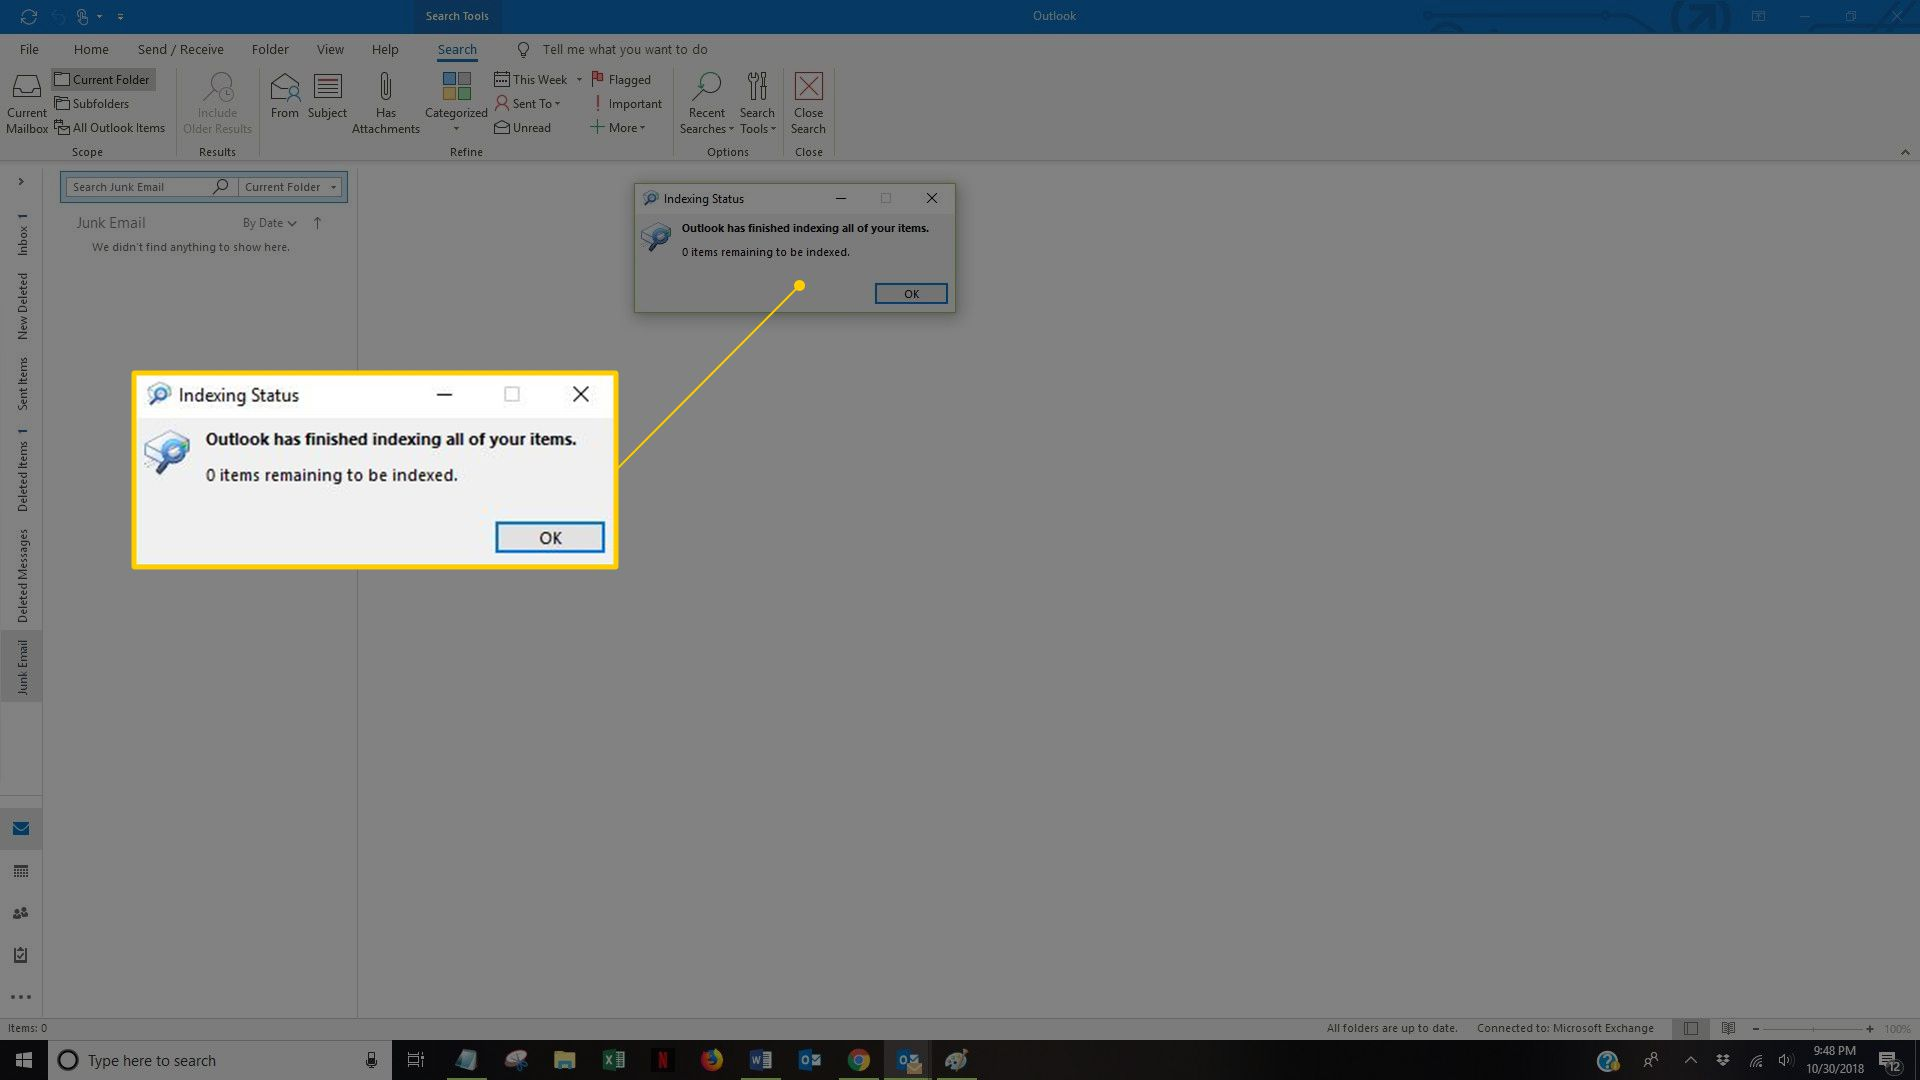 How to Fix Outlook Search Function Not Working